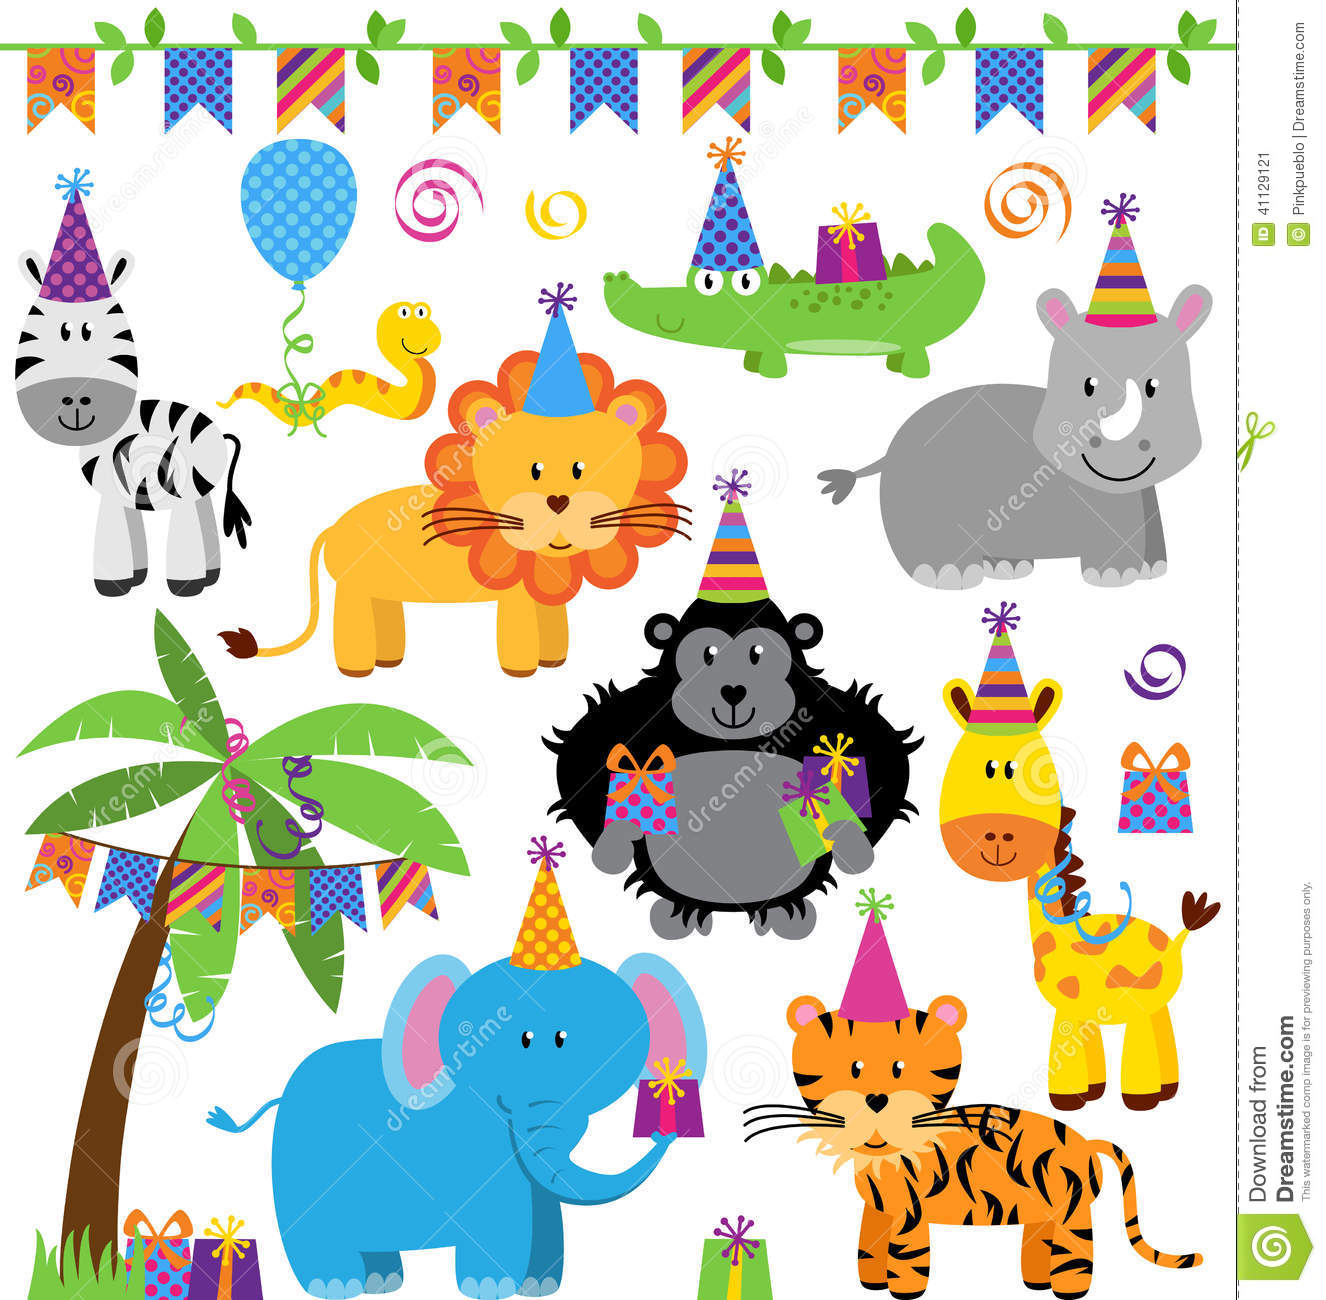 ... Themed Jungle, Zoo Or Safari Animals Stock Vector - Image: 41129121